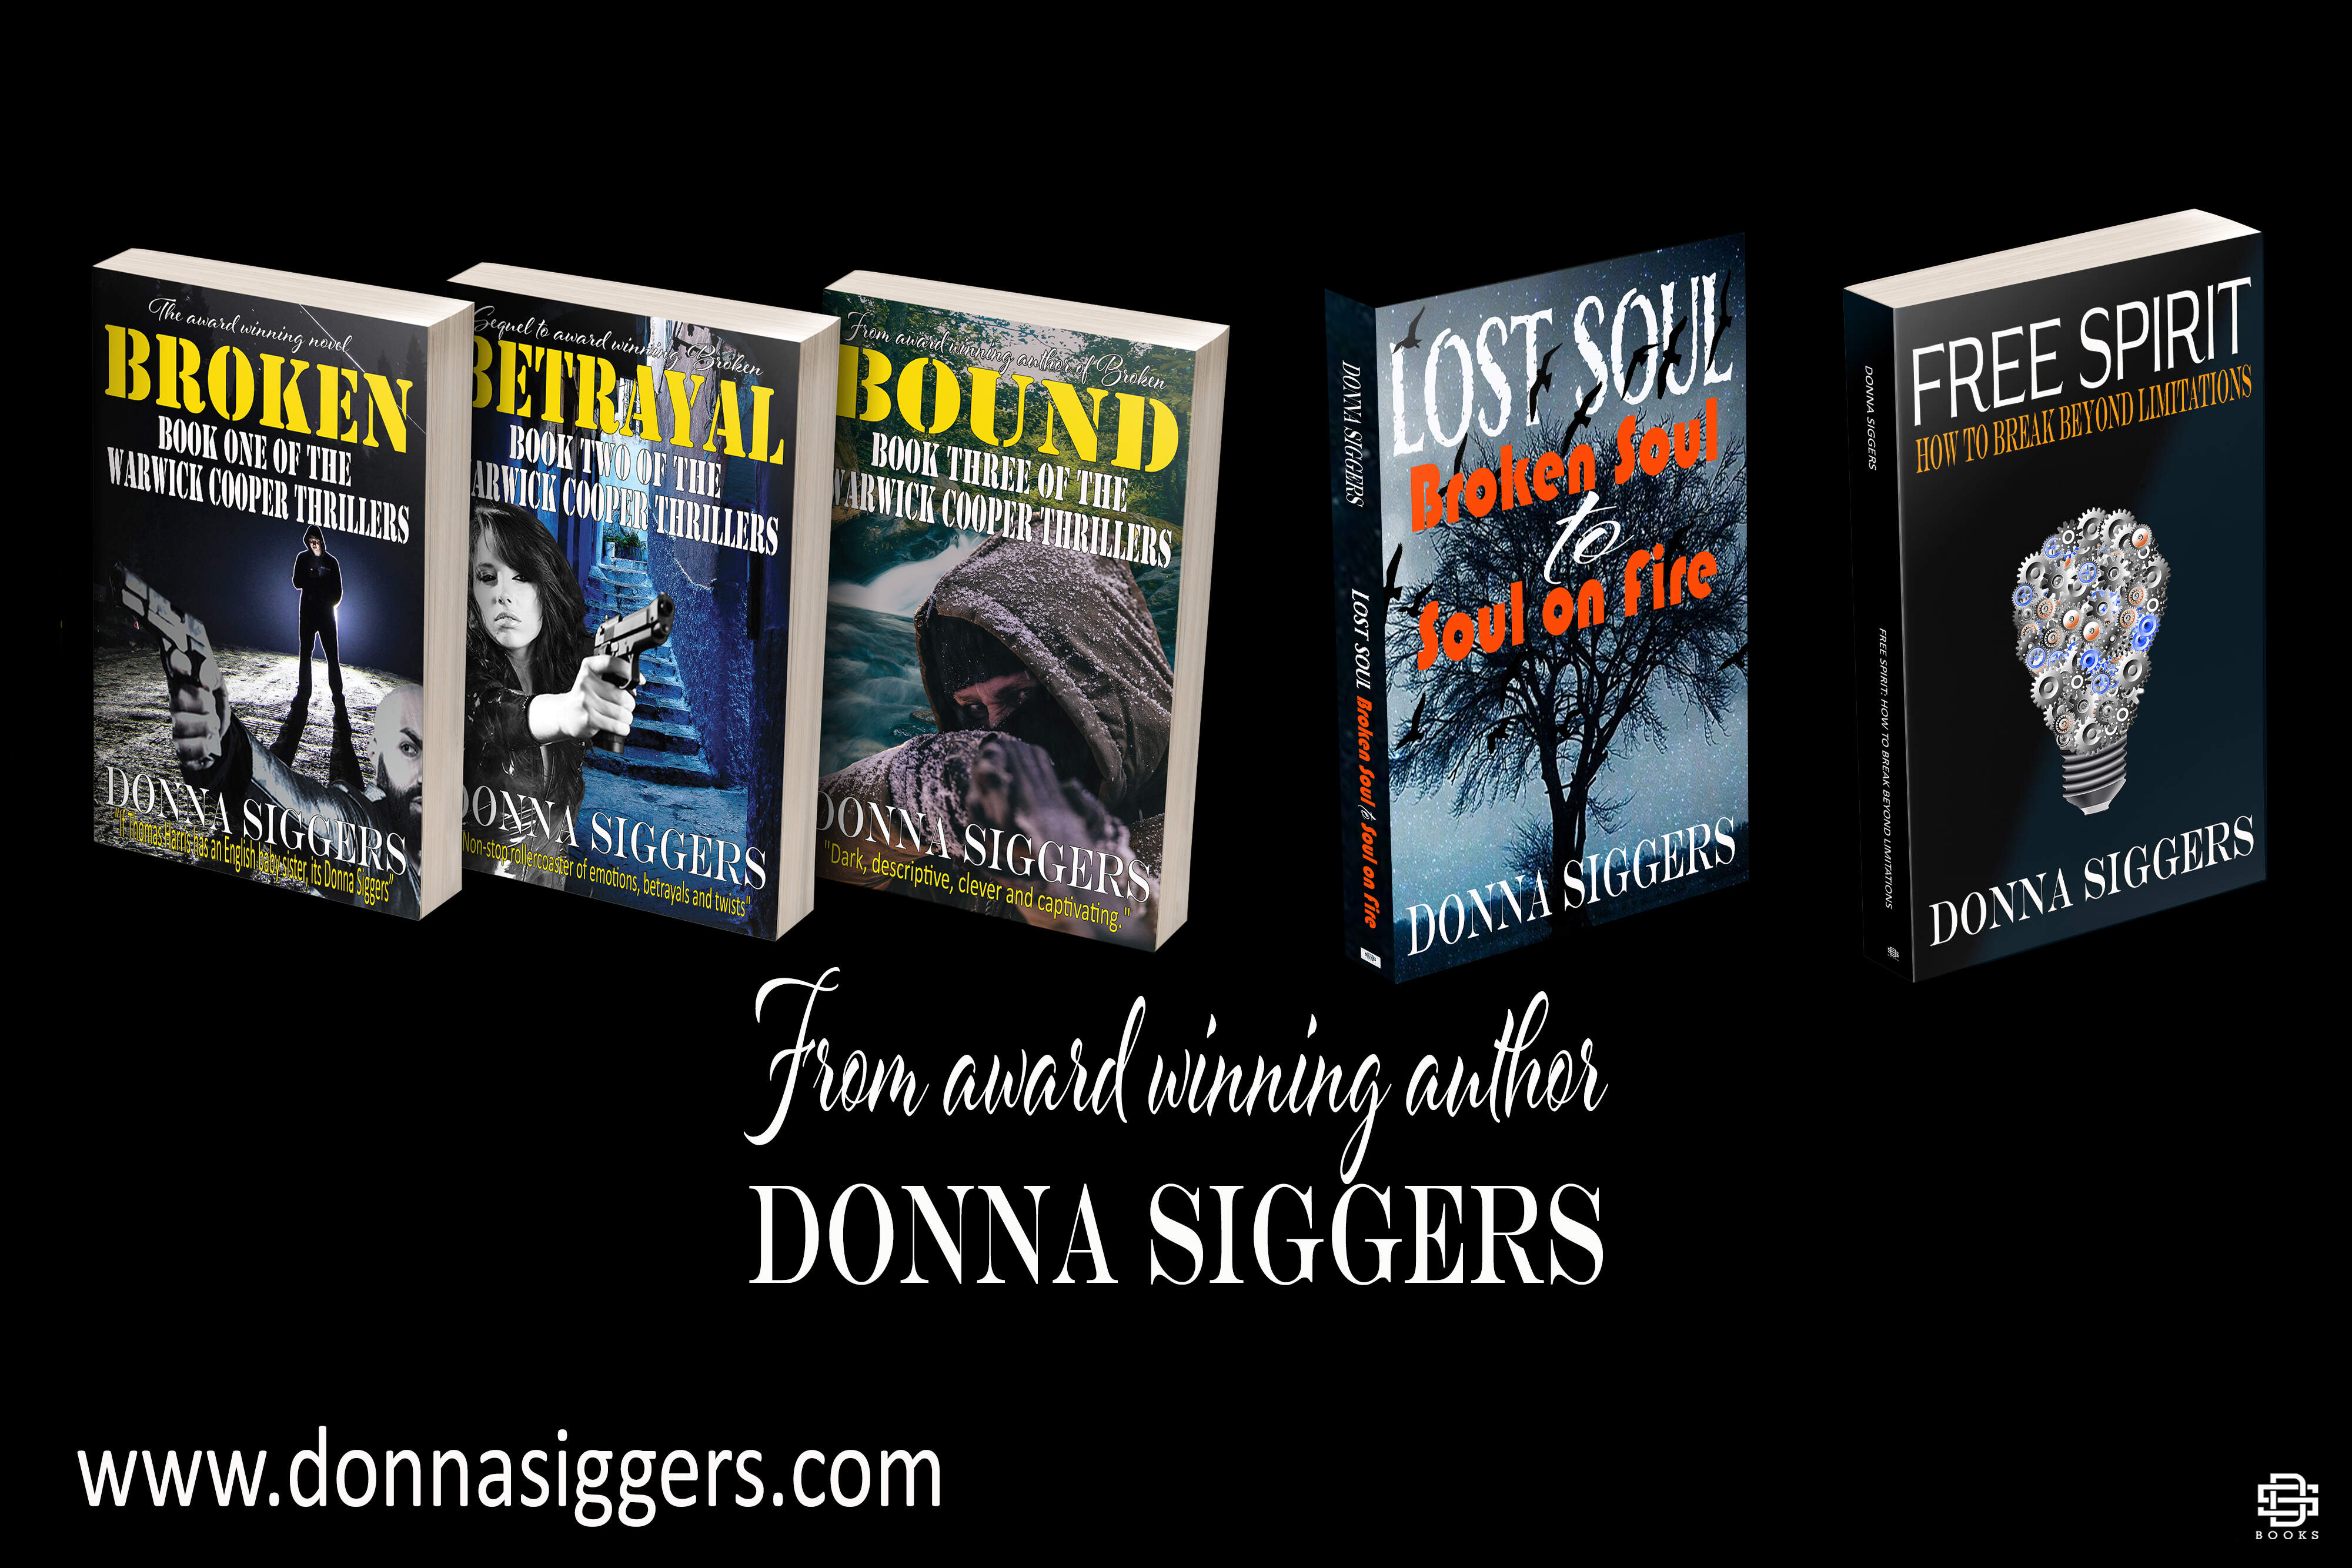 Donna Siggers